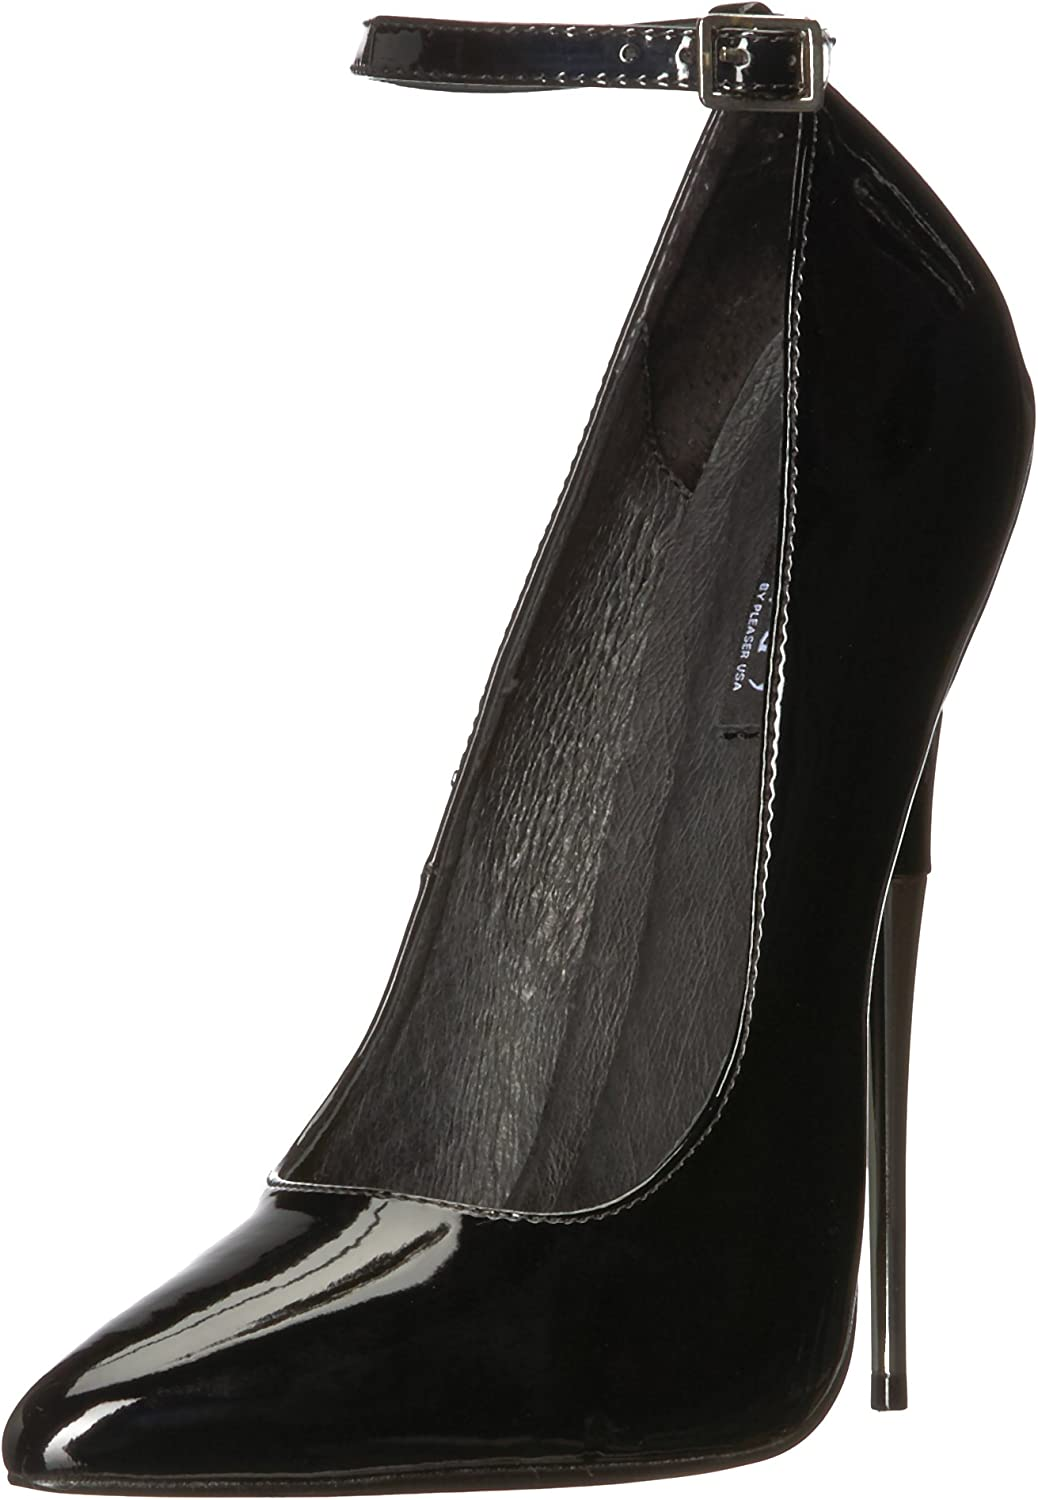 Pleaser Devious Women's Scream-12 Pump